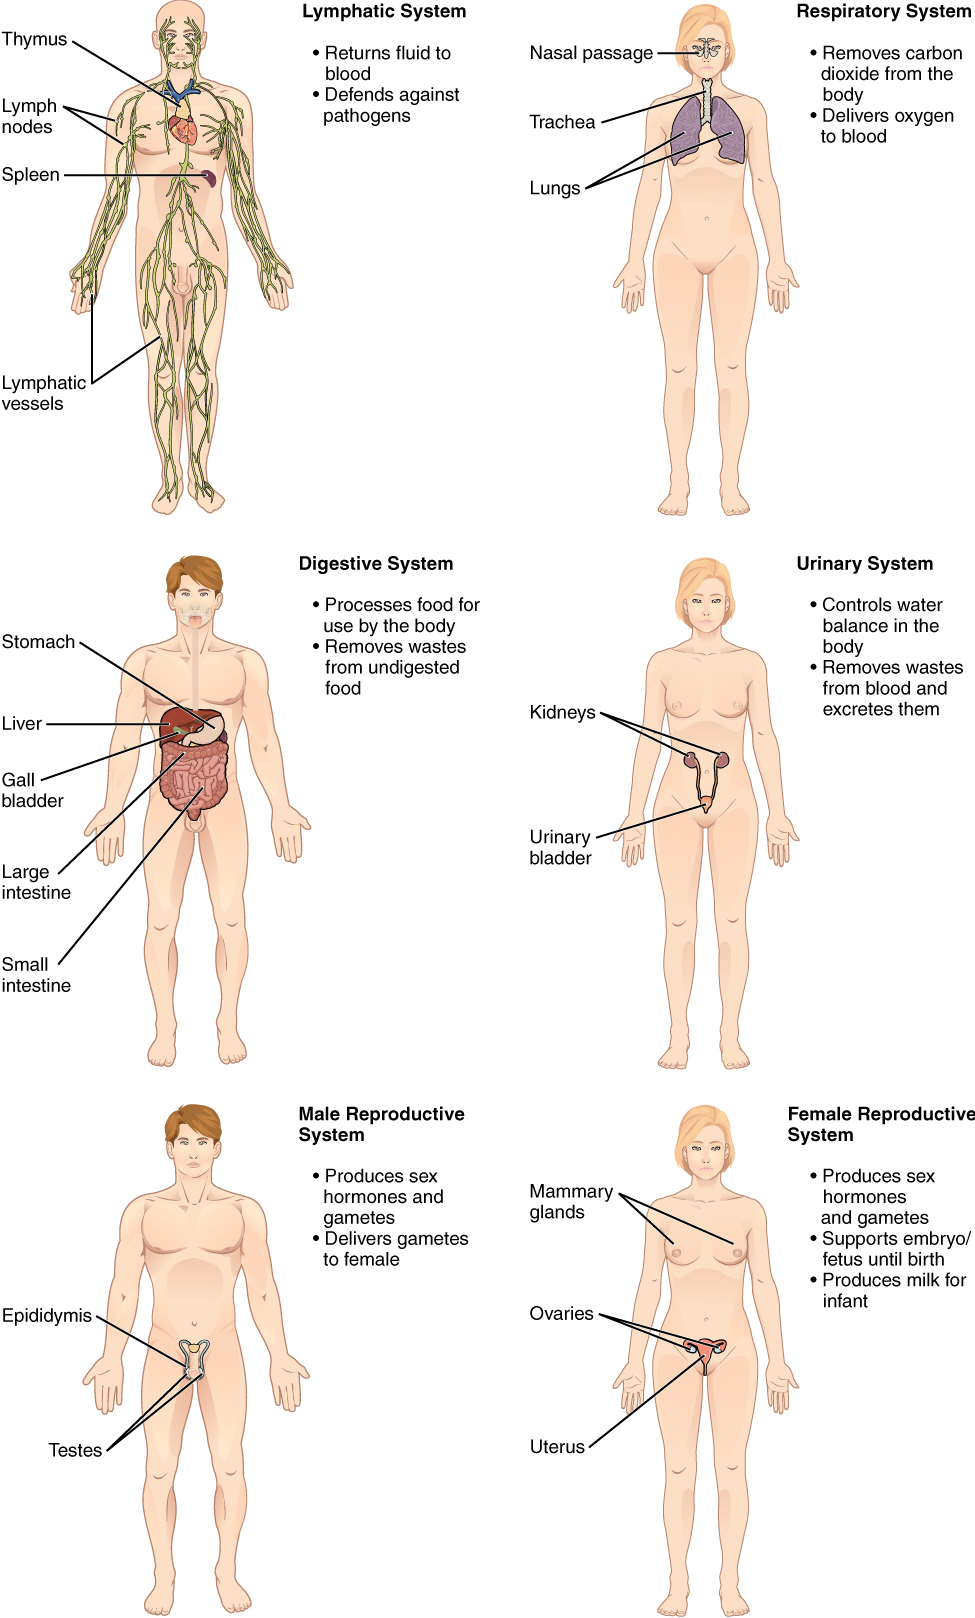 Overview of Anatomy and Physiology | Anatomy and Physiology